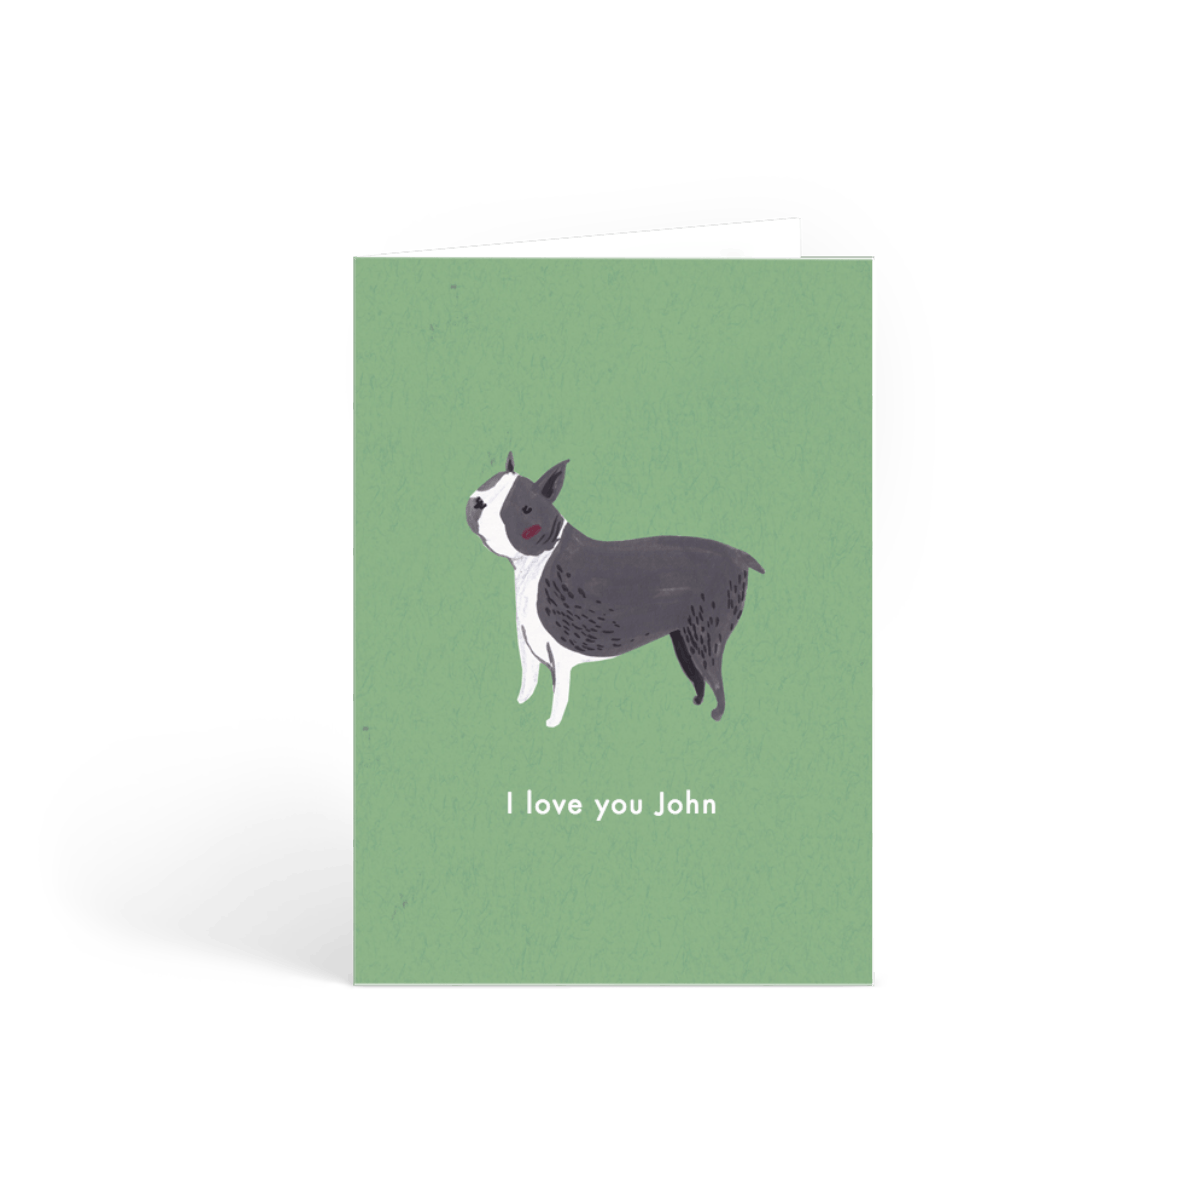 Https%3a%2f%2fwww.papier.com%2fproduct image%2f3121%2f2%2fboston terrier 785 front 1453910660.png?ixlib=rb 1.1